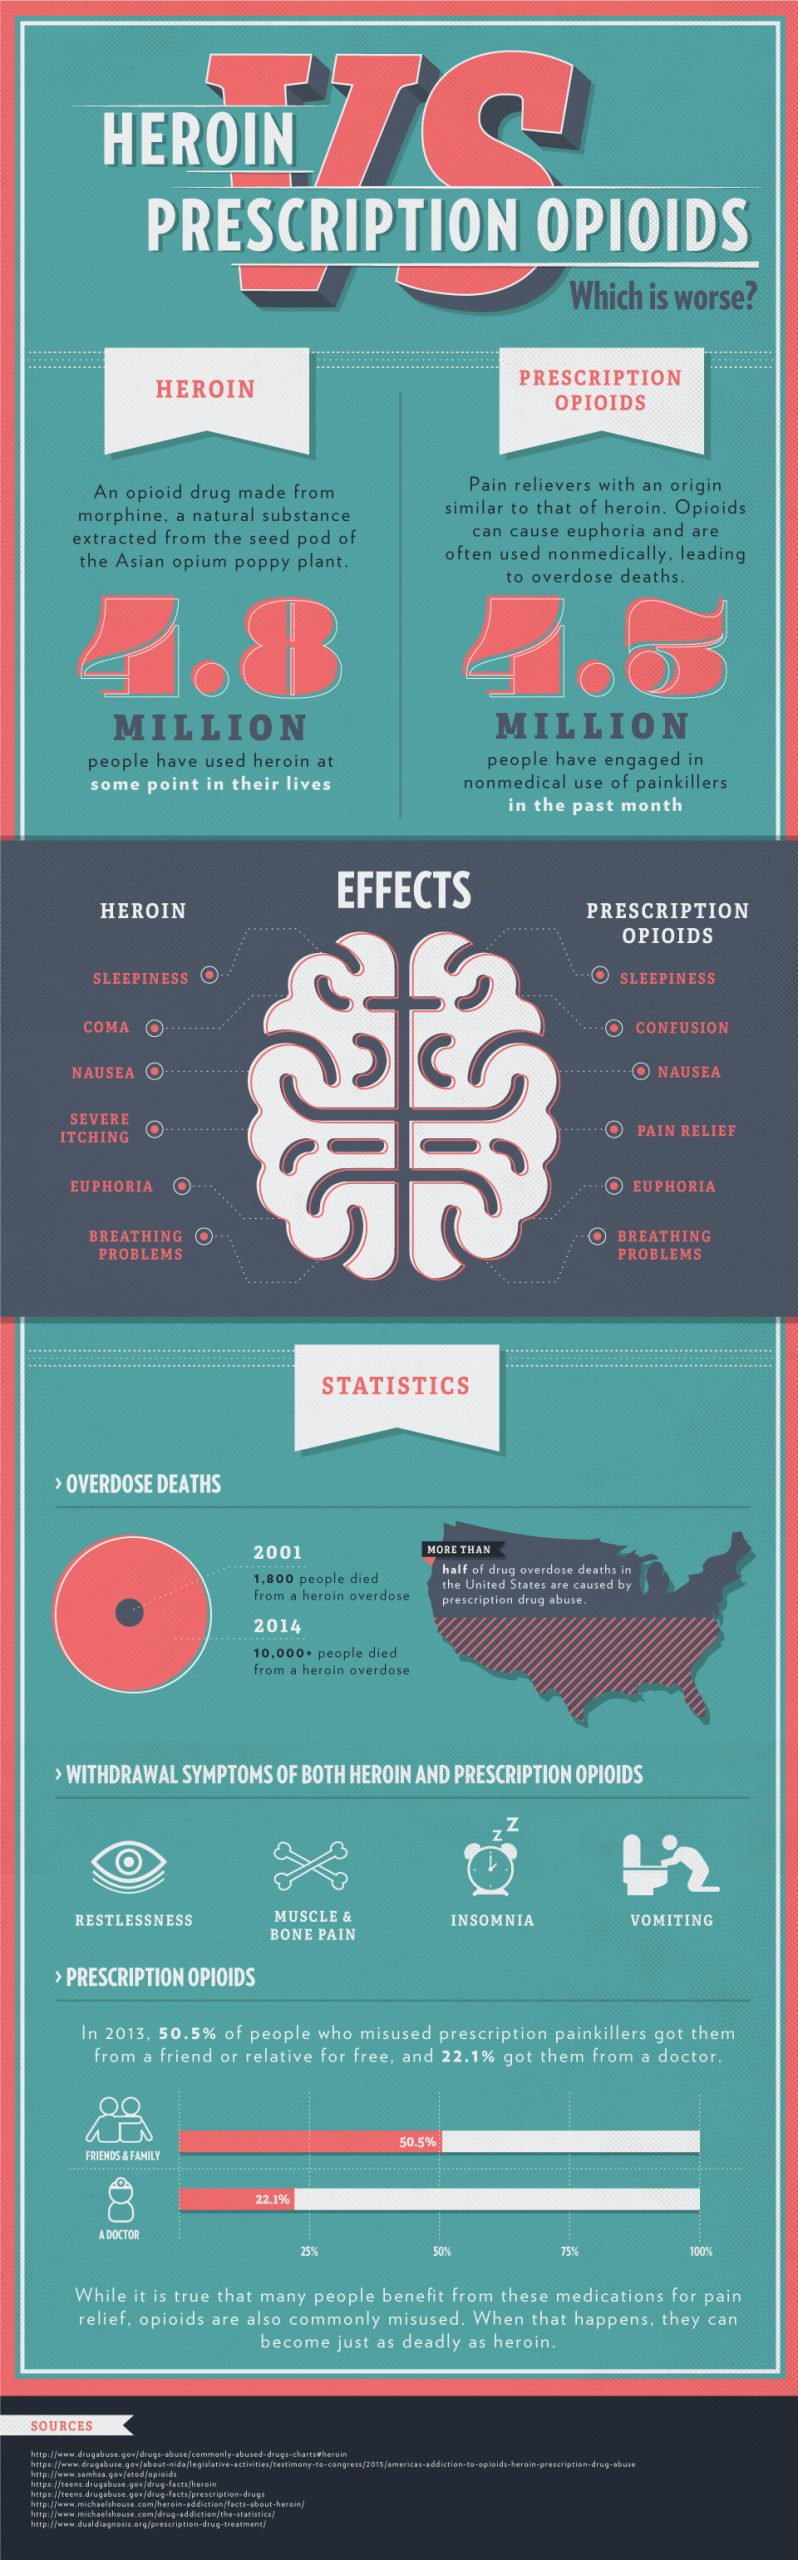 heroin-vs-prescription-opioids-effects-differences-similarities-brain-effects-millions-effected